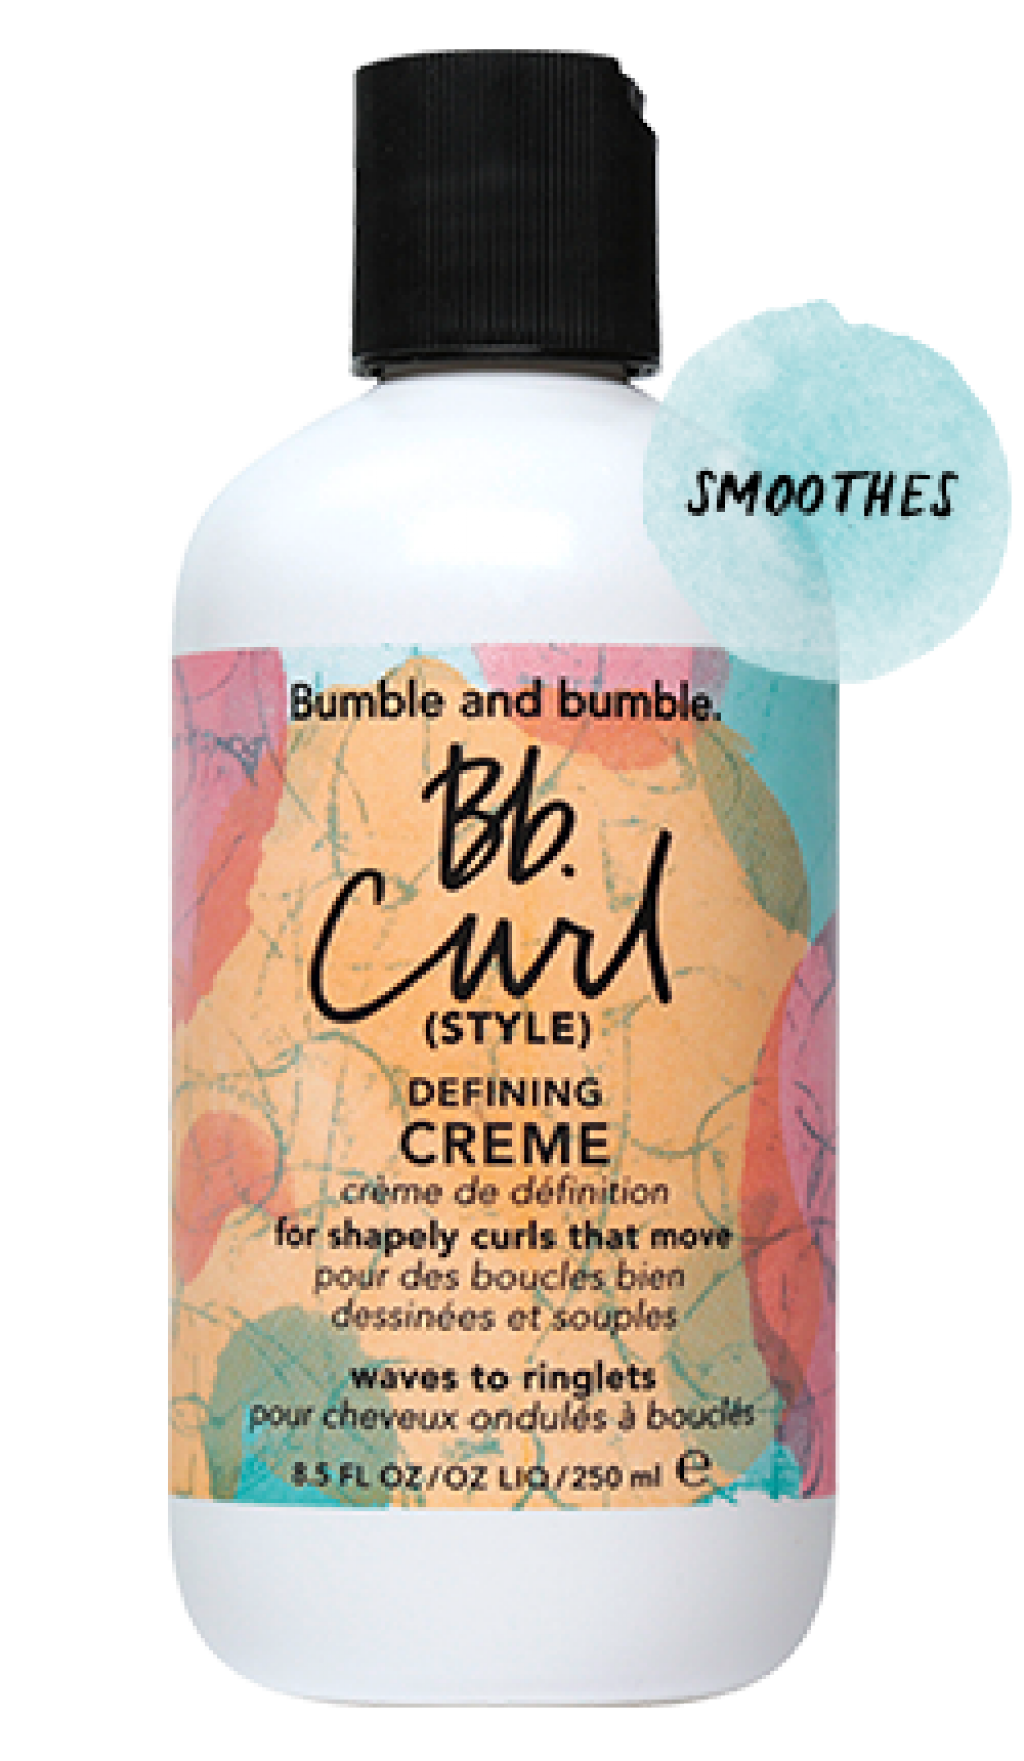 bumble and bumble free haircut bumble bumble bb curl defining creme hair care 3886 | Bumble%20and%20bumble%20Bb.Curl%20defining%20creme